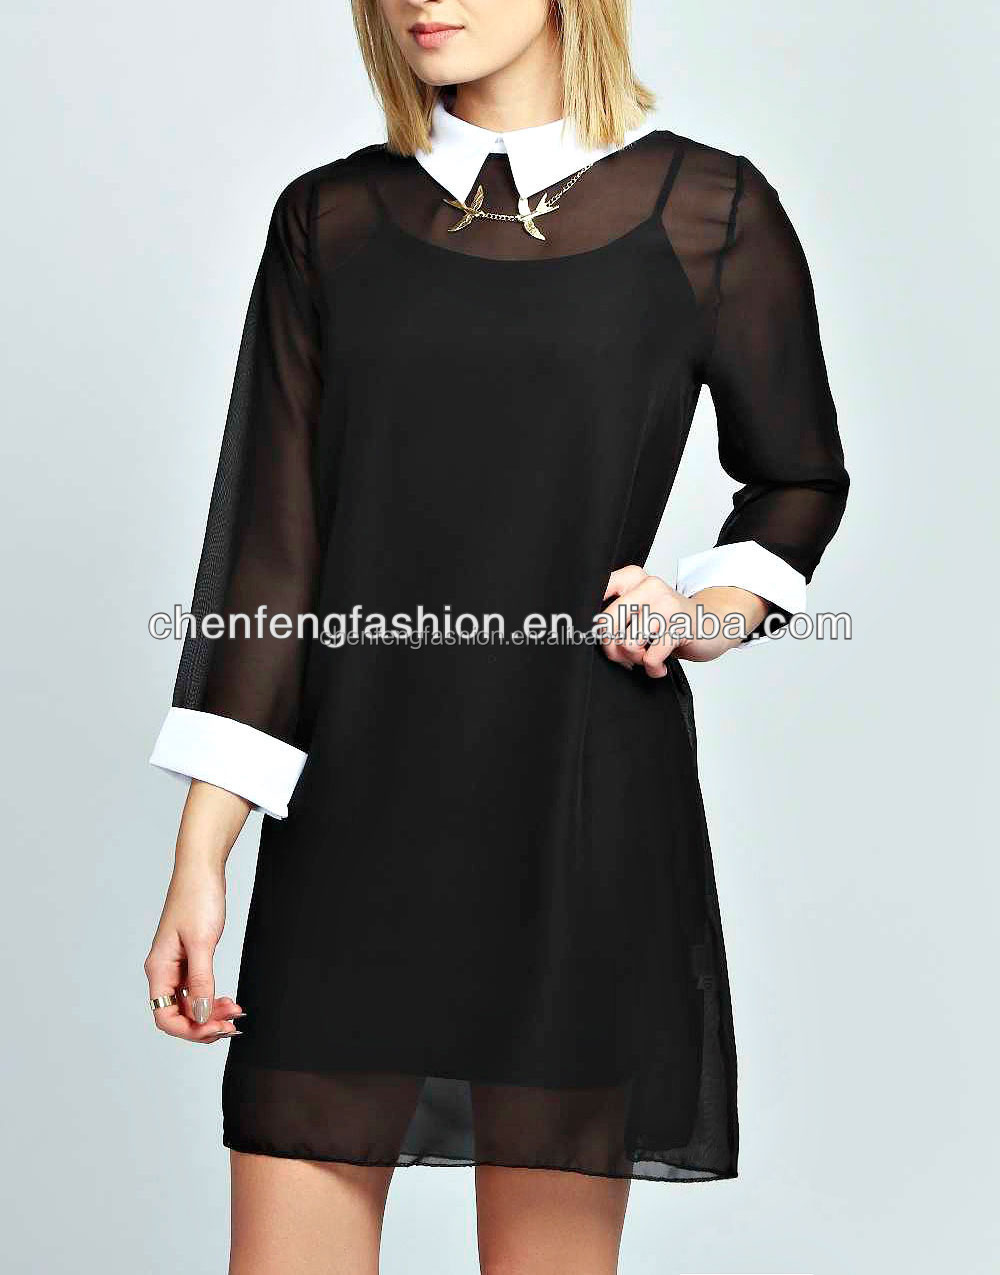 Black dress with white collar and cuffs